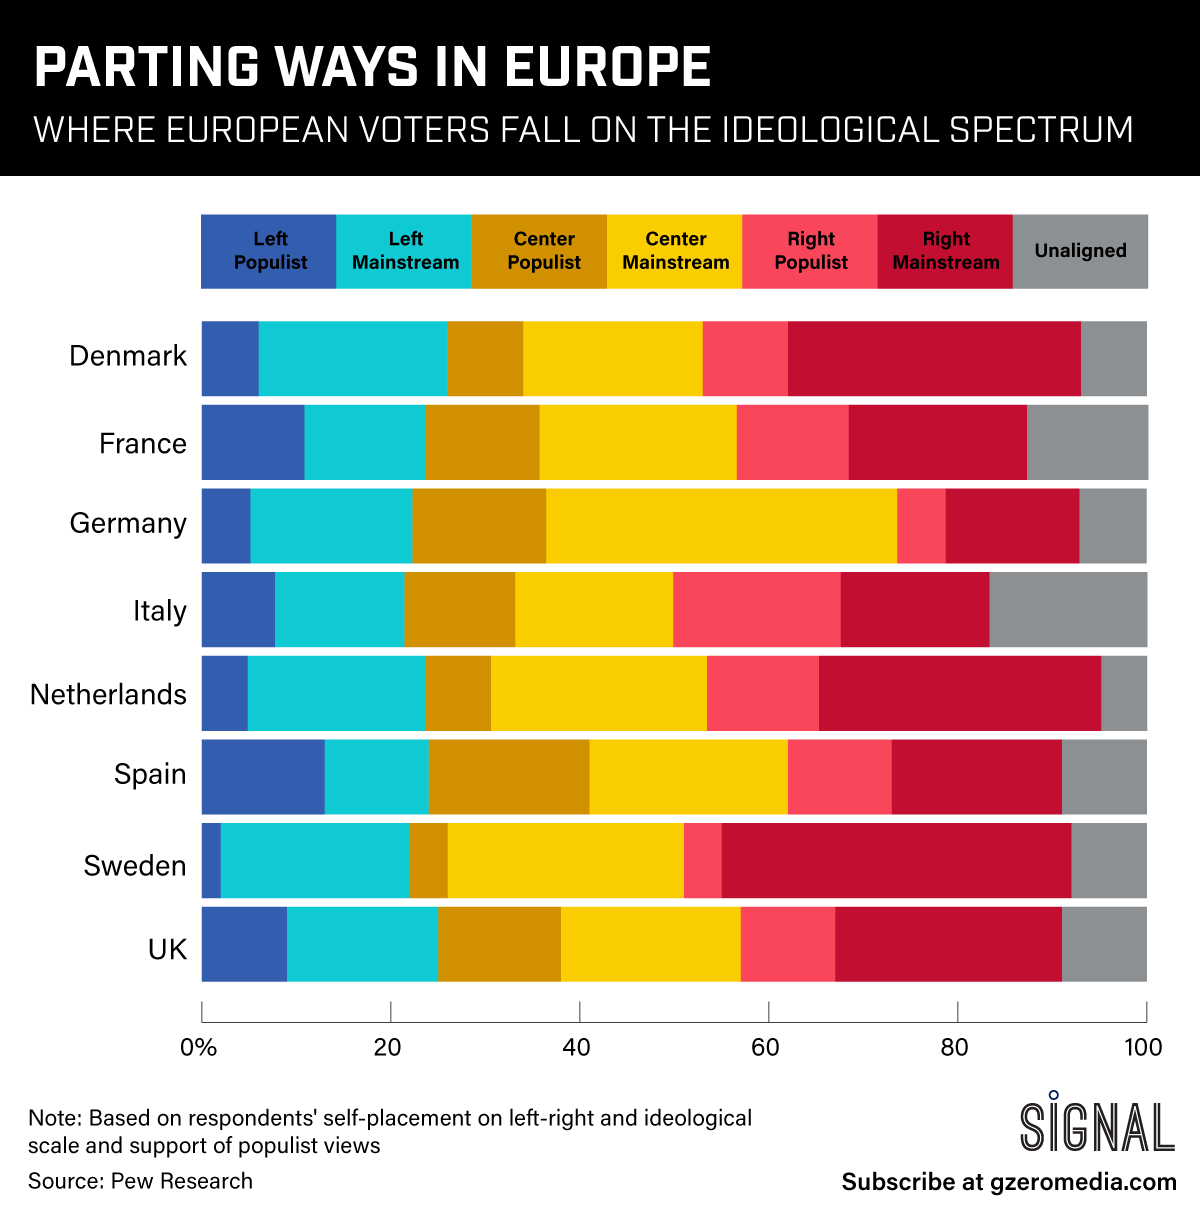 GRAPHIC TRUTH: PARTING WAYS IN EUROPE